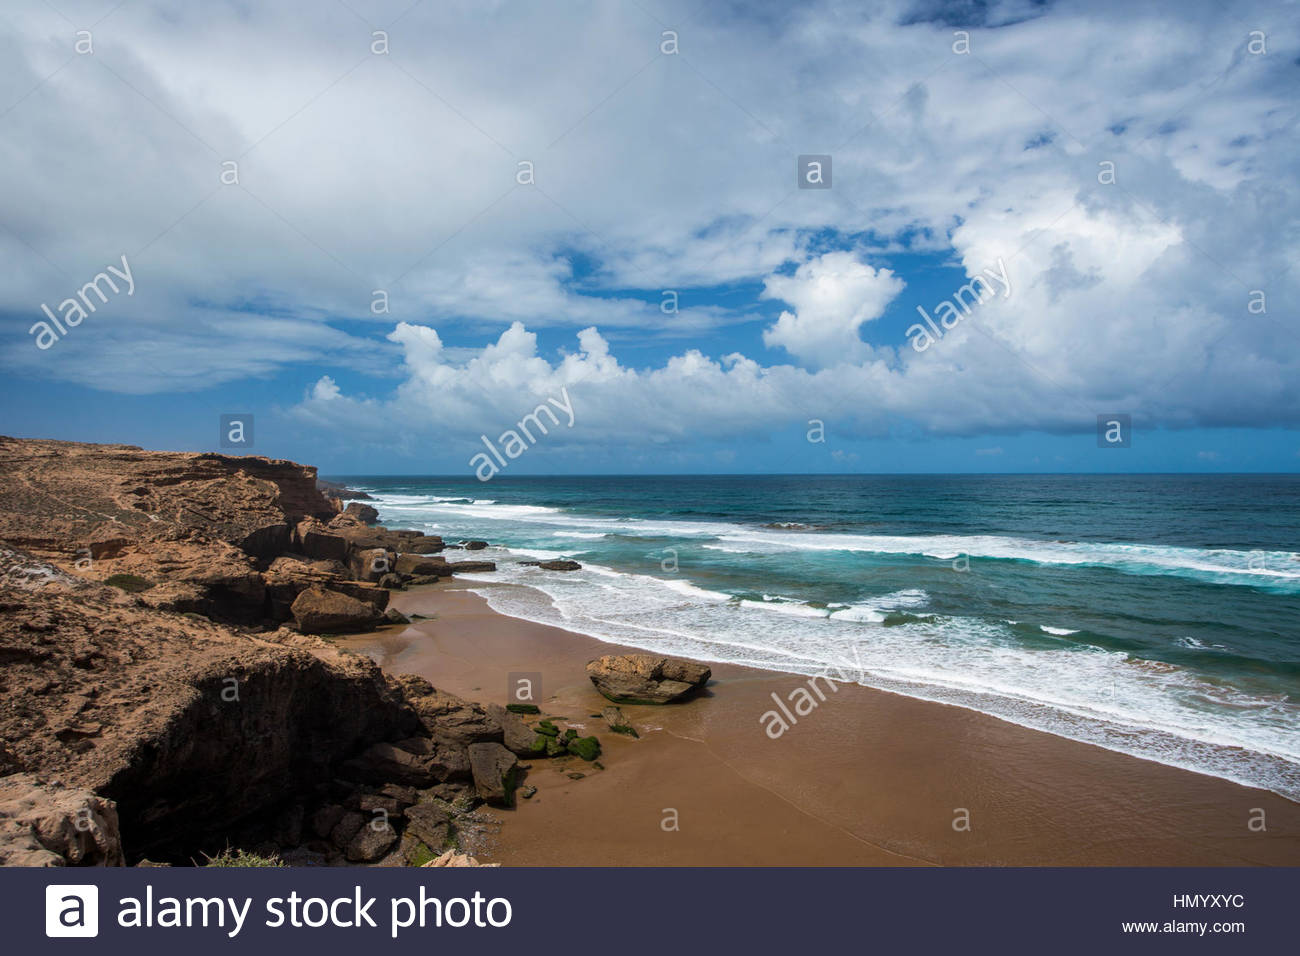 The rocky coastline and a flat beach north of Taghazout, Morocco on a sunny day. - Stock Image